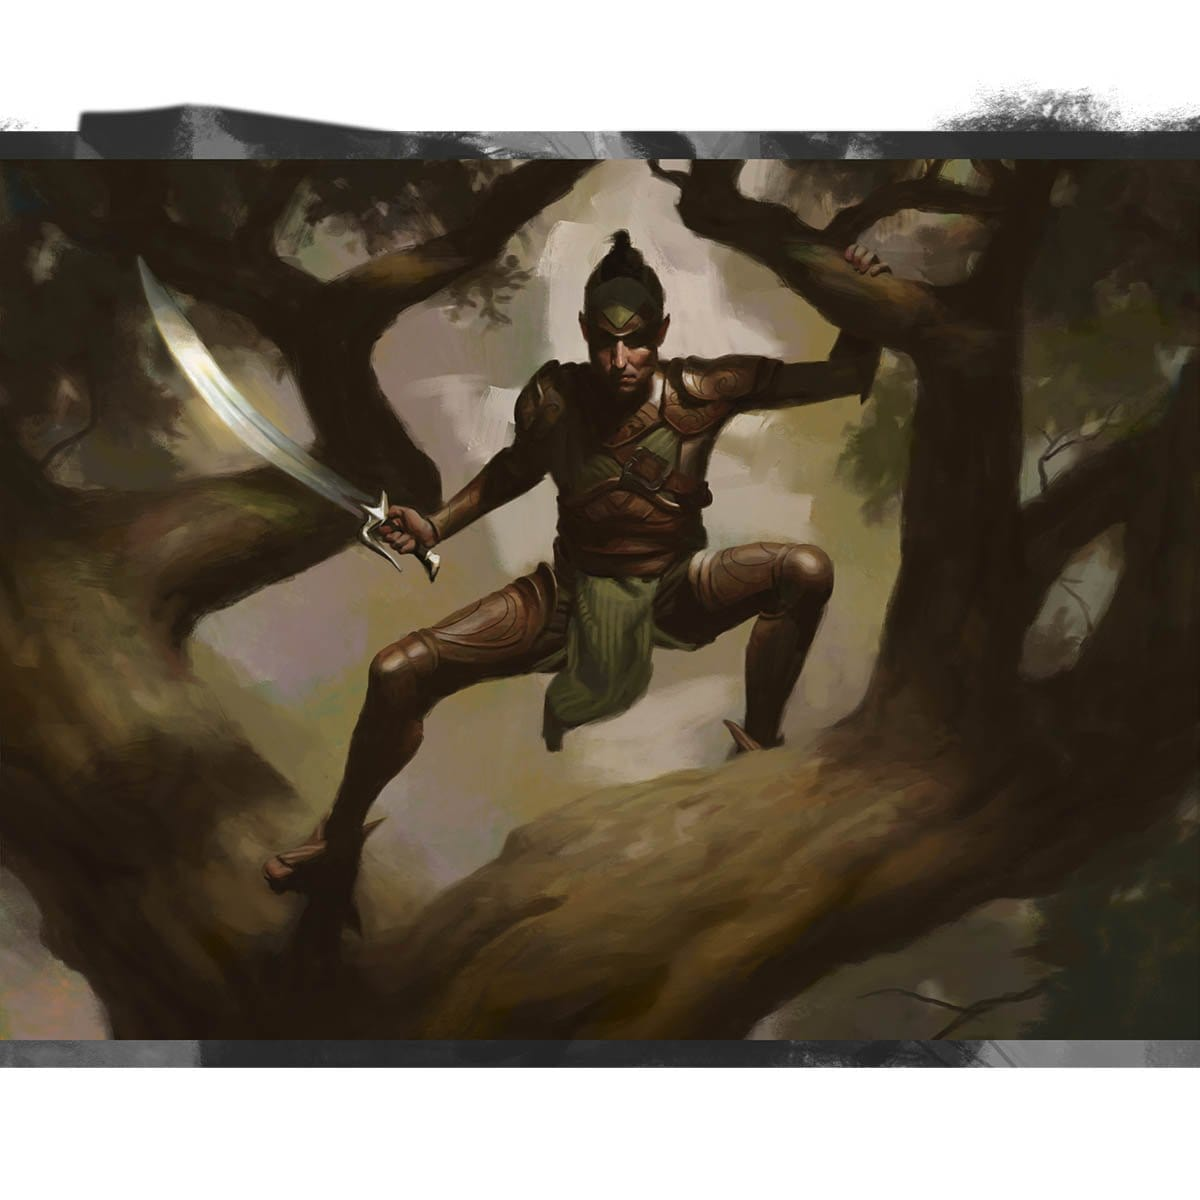 Treetop Warden Print - Print - Original Magic Art - Accessories for Magic the Gathering and other card games